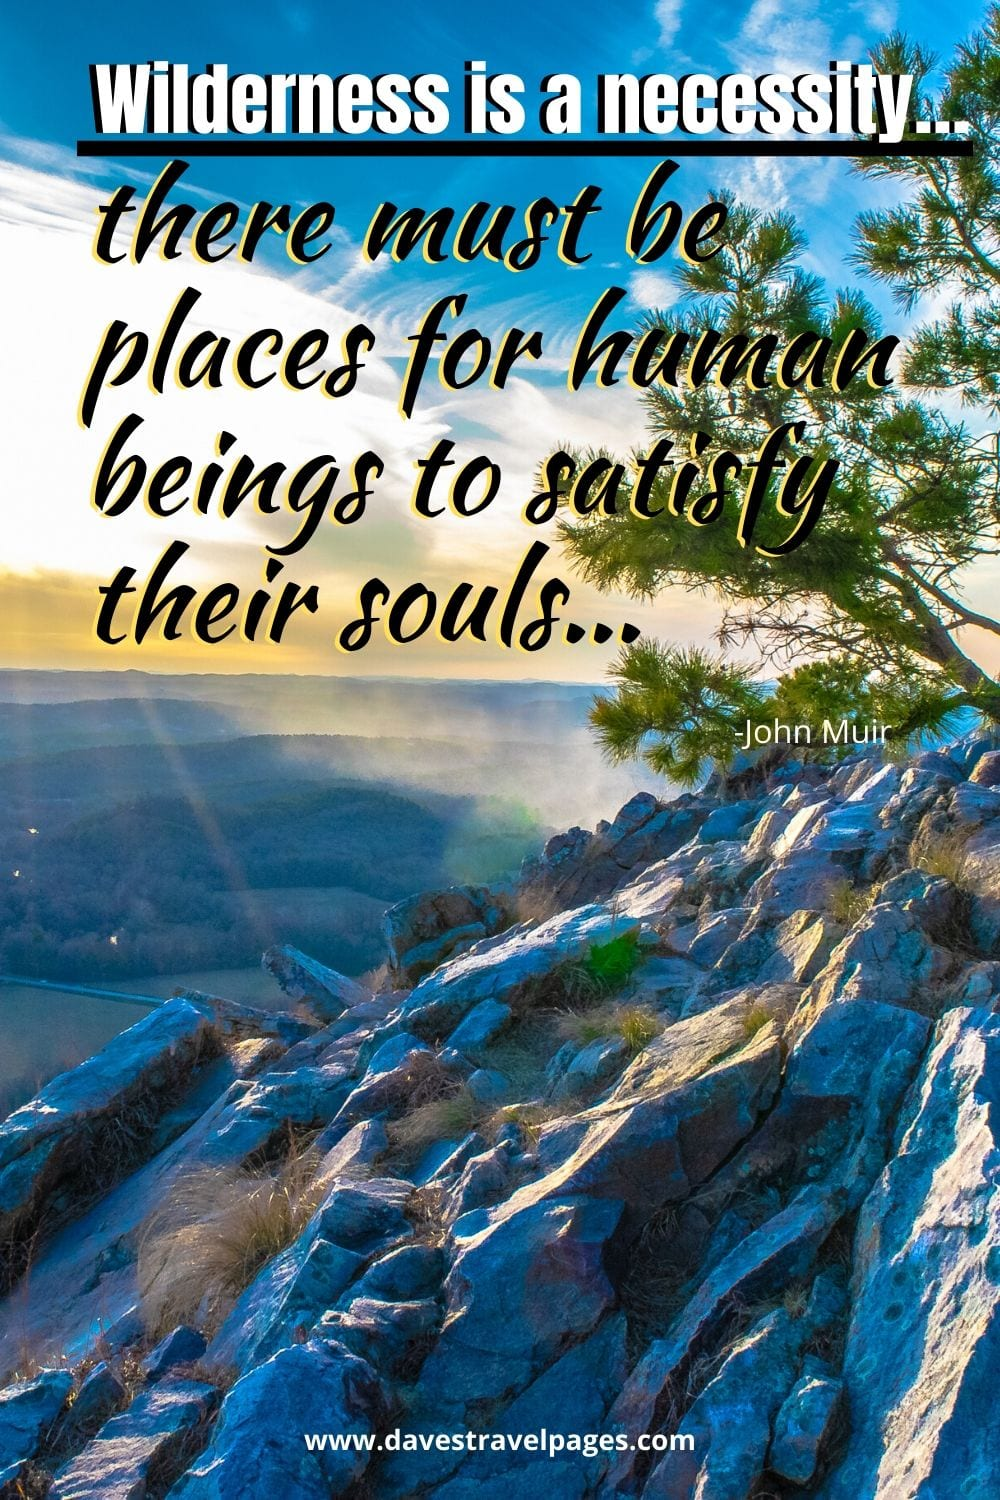 """Wilderness quotes by John Muir: """"Wilderness is a necessity… there must be places for human beings to satisfy their souls…"""""""